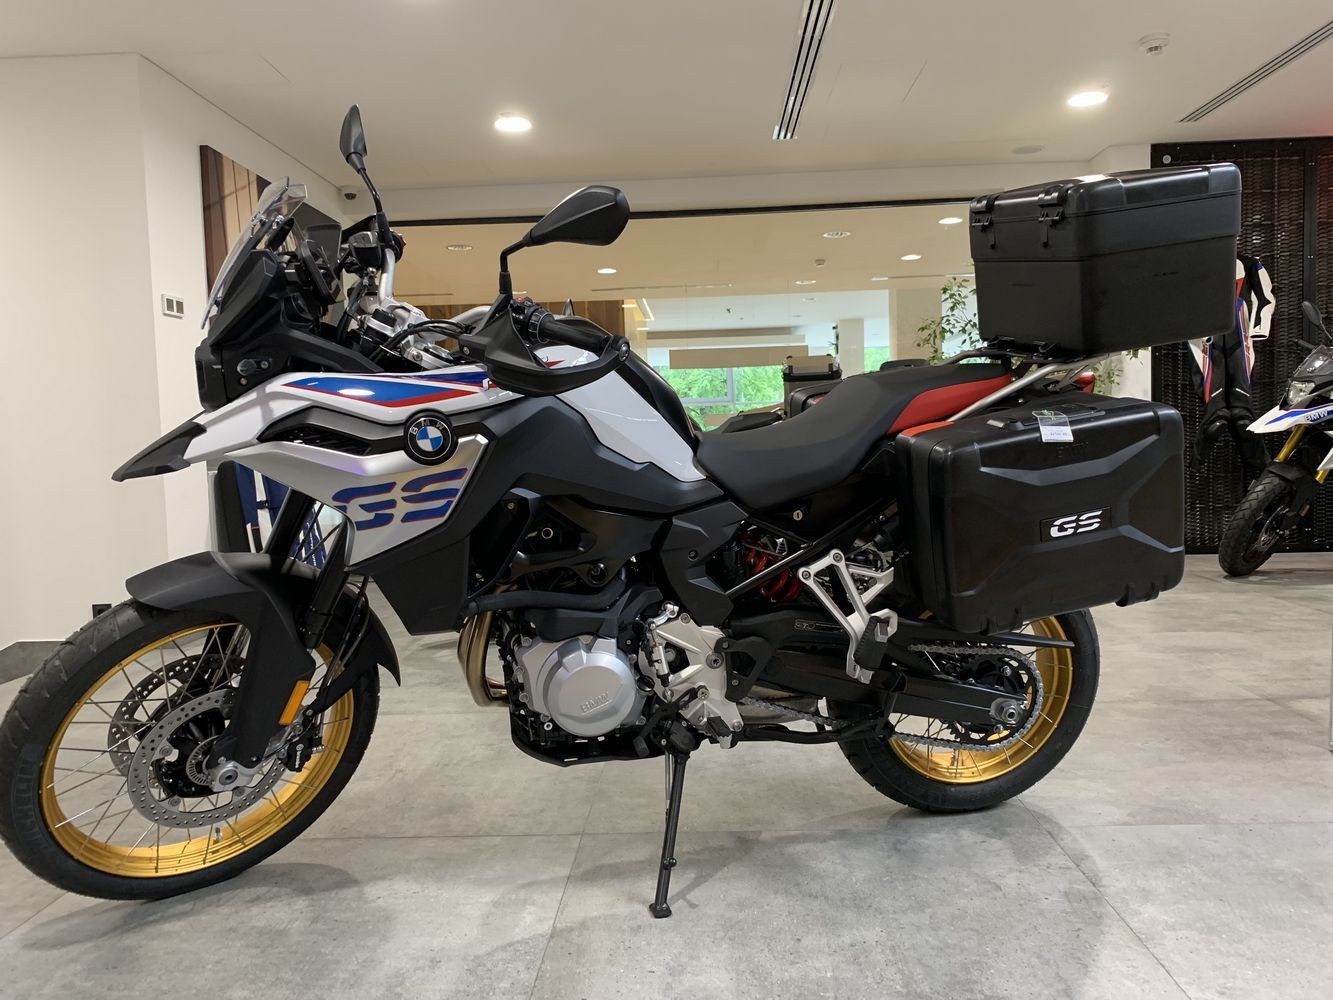 F 850 GS RALLEY